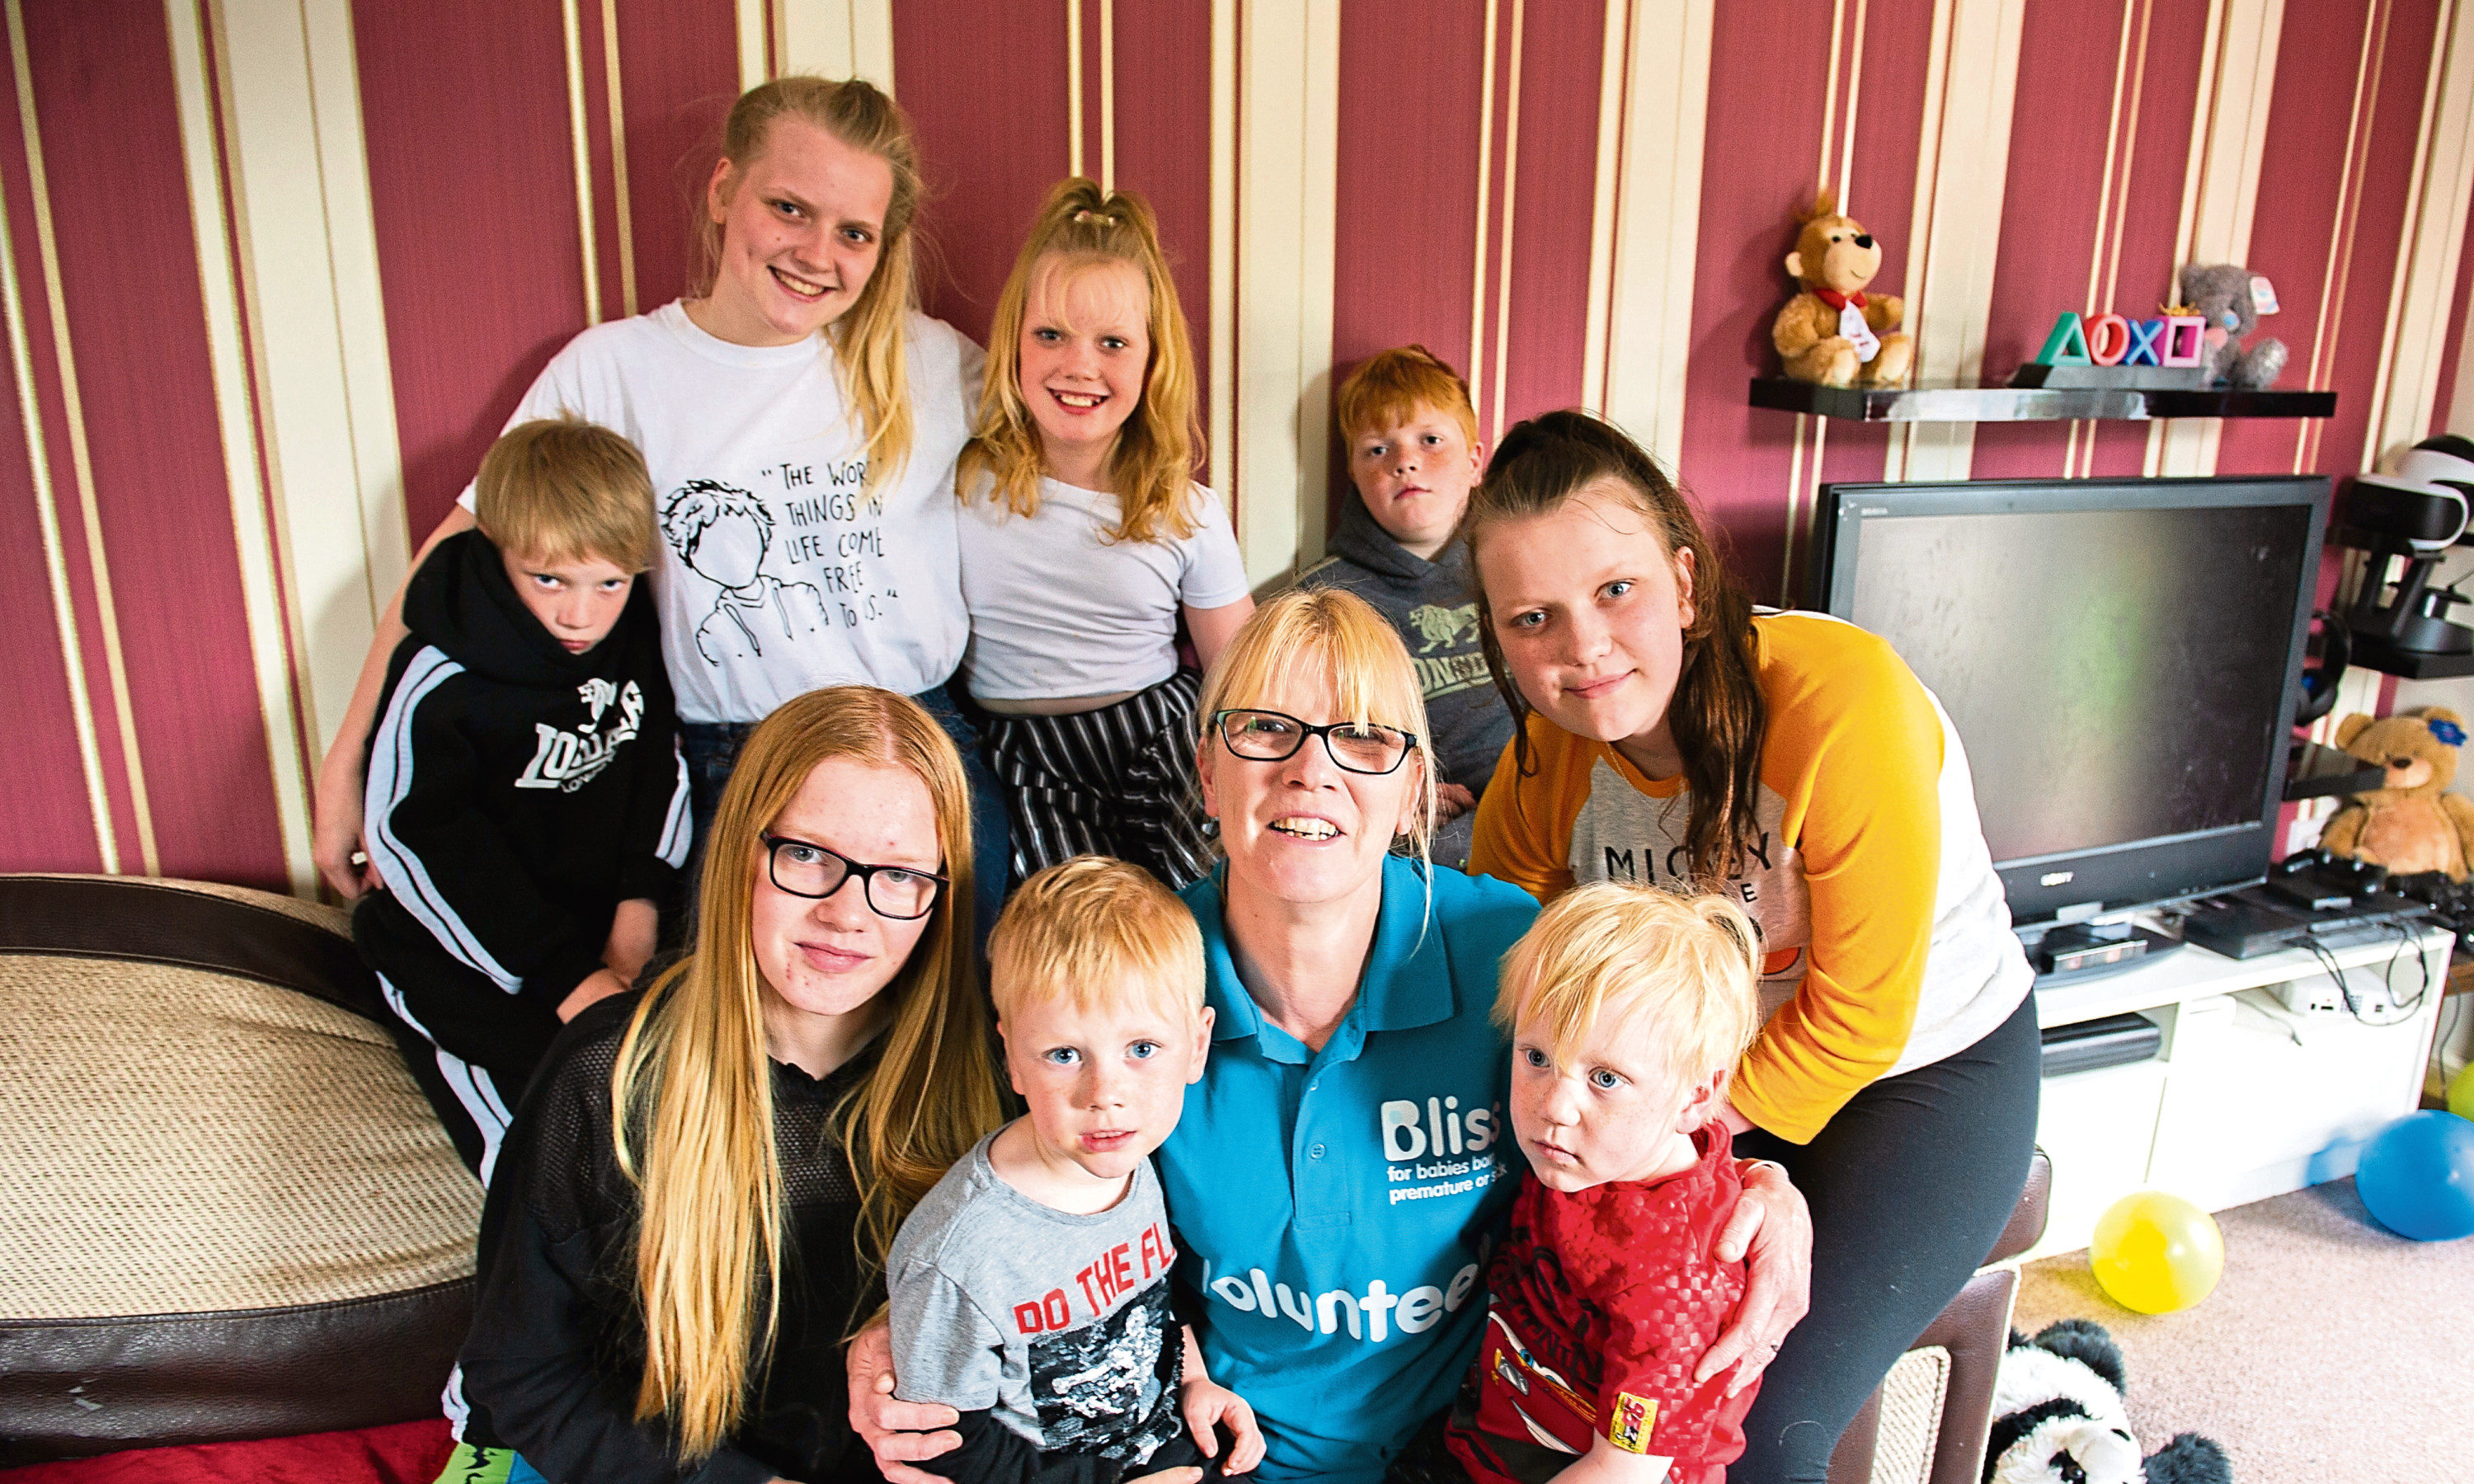 Heather Esplin has had 10 premature babies and still has eight living at home with her. Picture shows: back - left to right - Owen, Tamara, Robyn, and James; front - Imogen, Alan, Heather Esplin, Issac and Dana